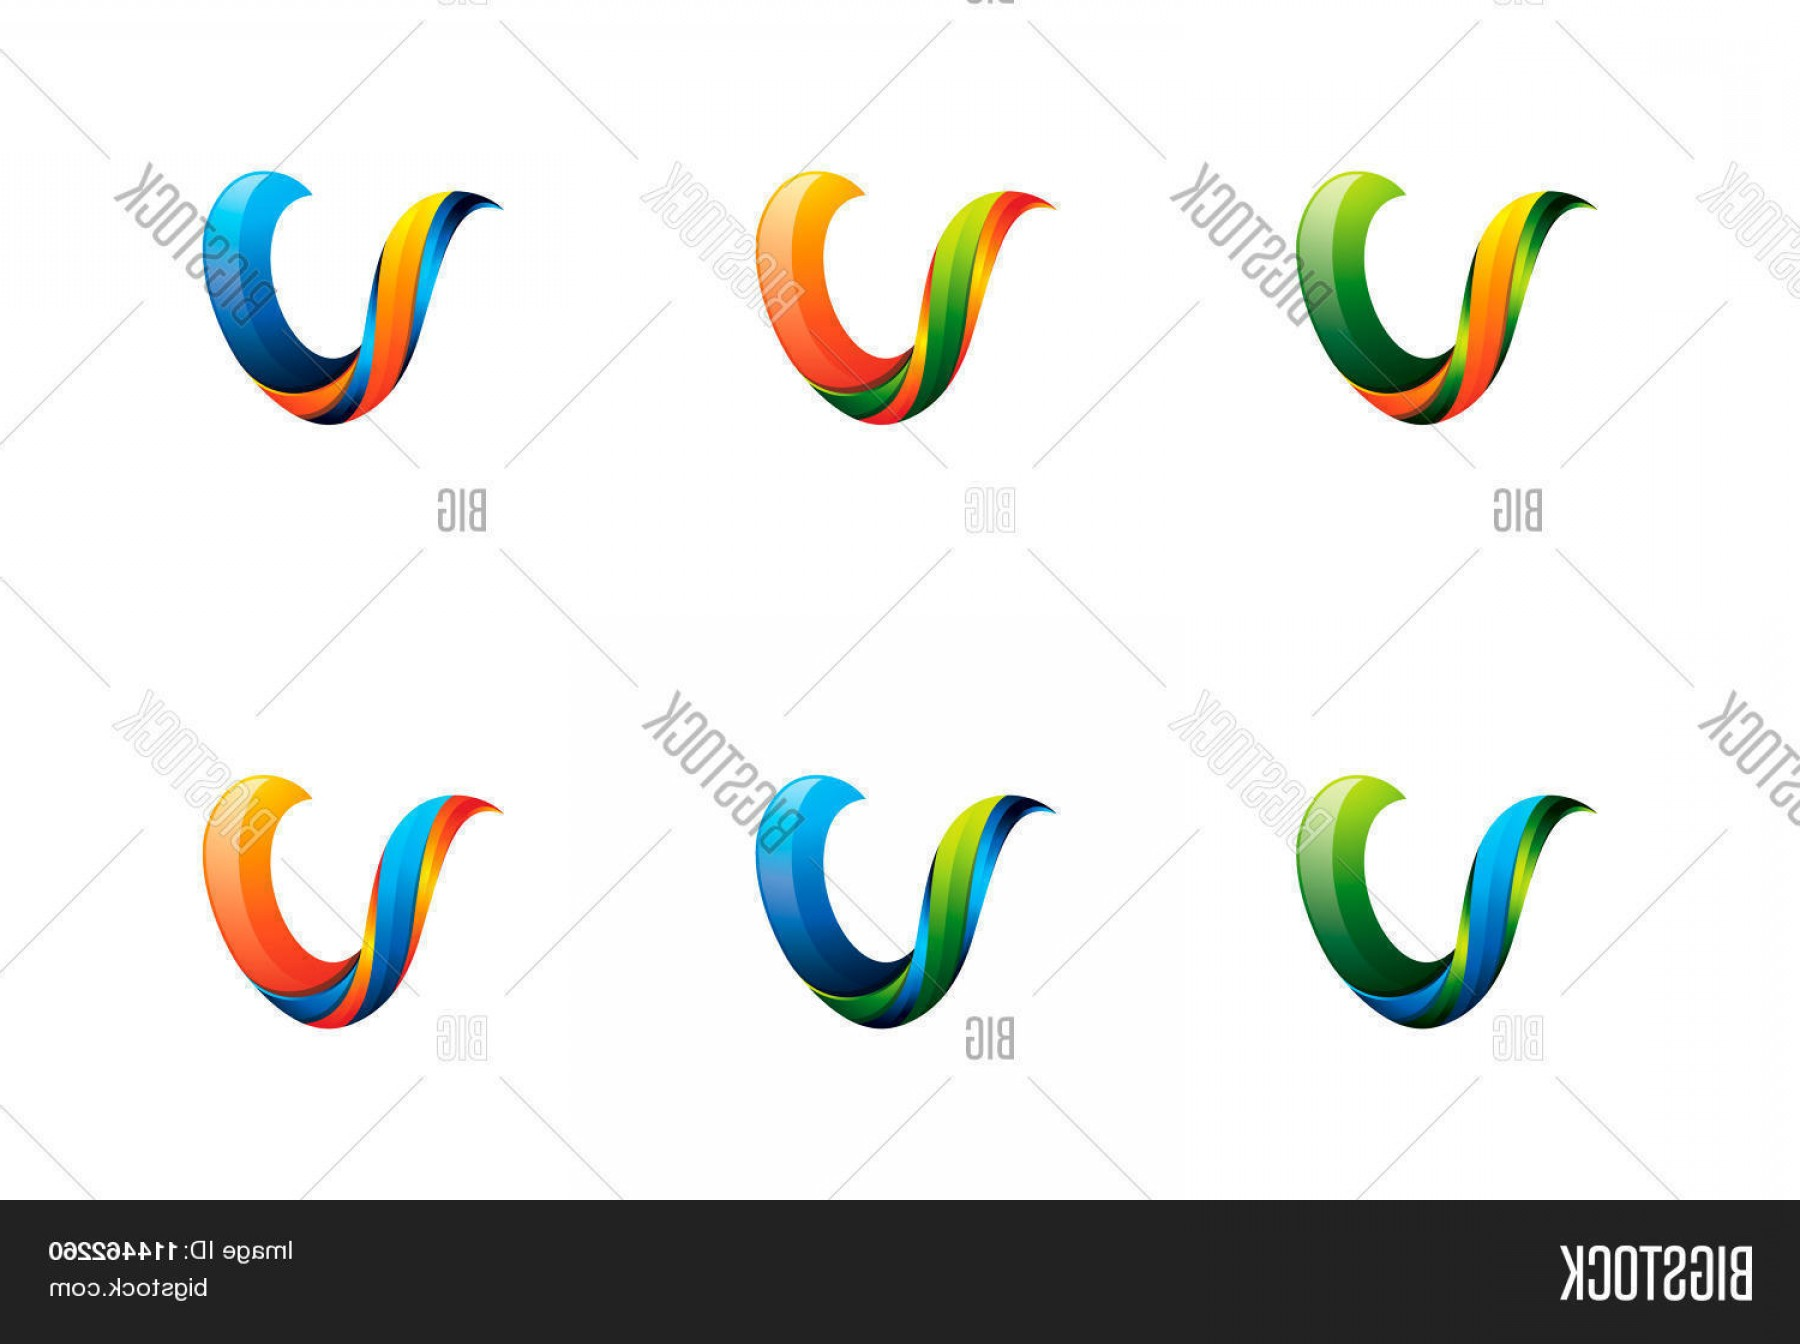 V Logo Vector: Stock Vector Colorful V Letter Logo C V Logo Design Template Element Letter V Design Vector